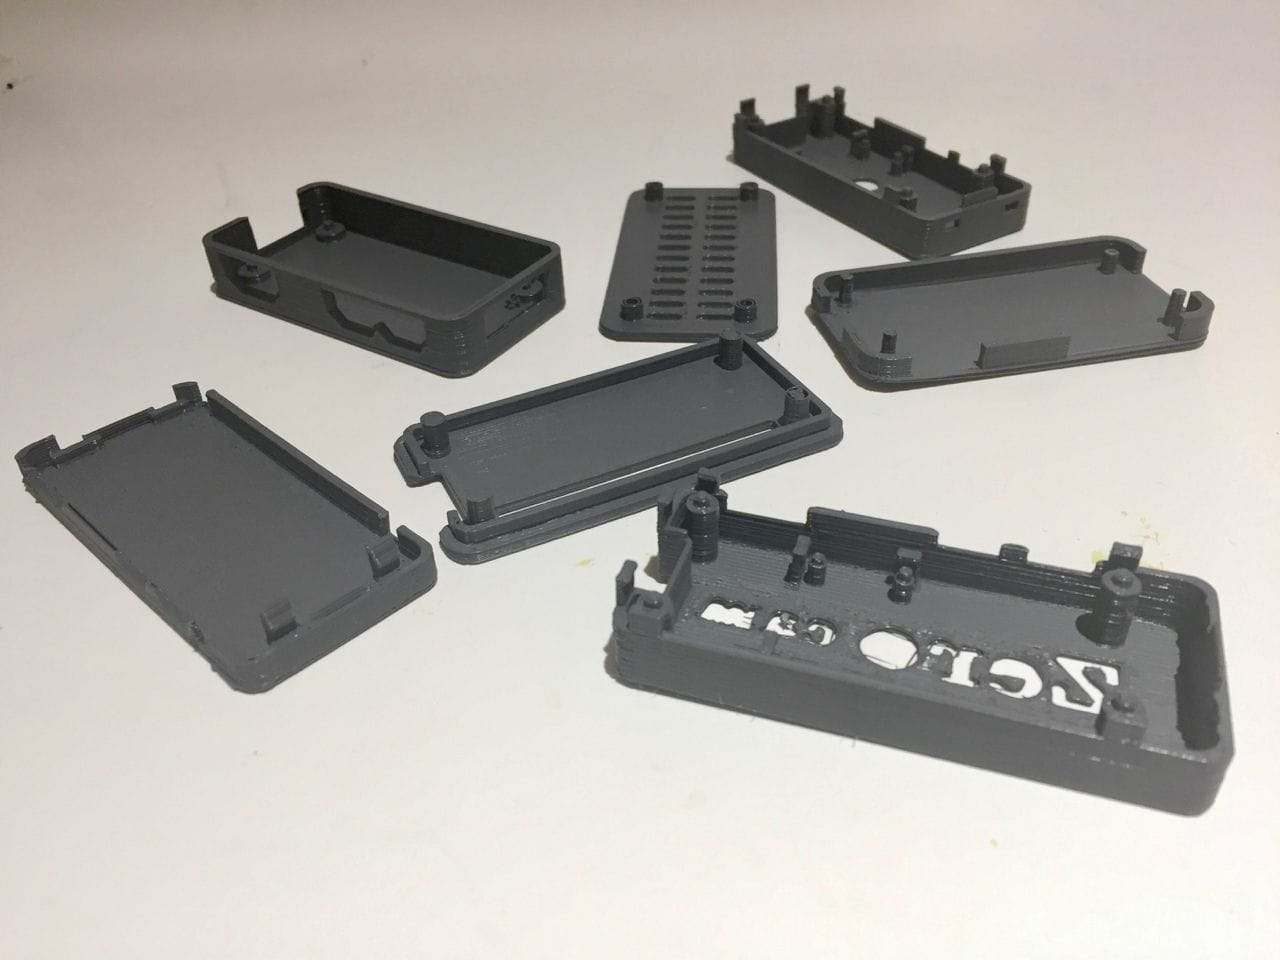 3D printing a lot of Raspberry Pi cases...